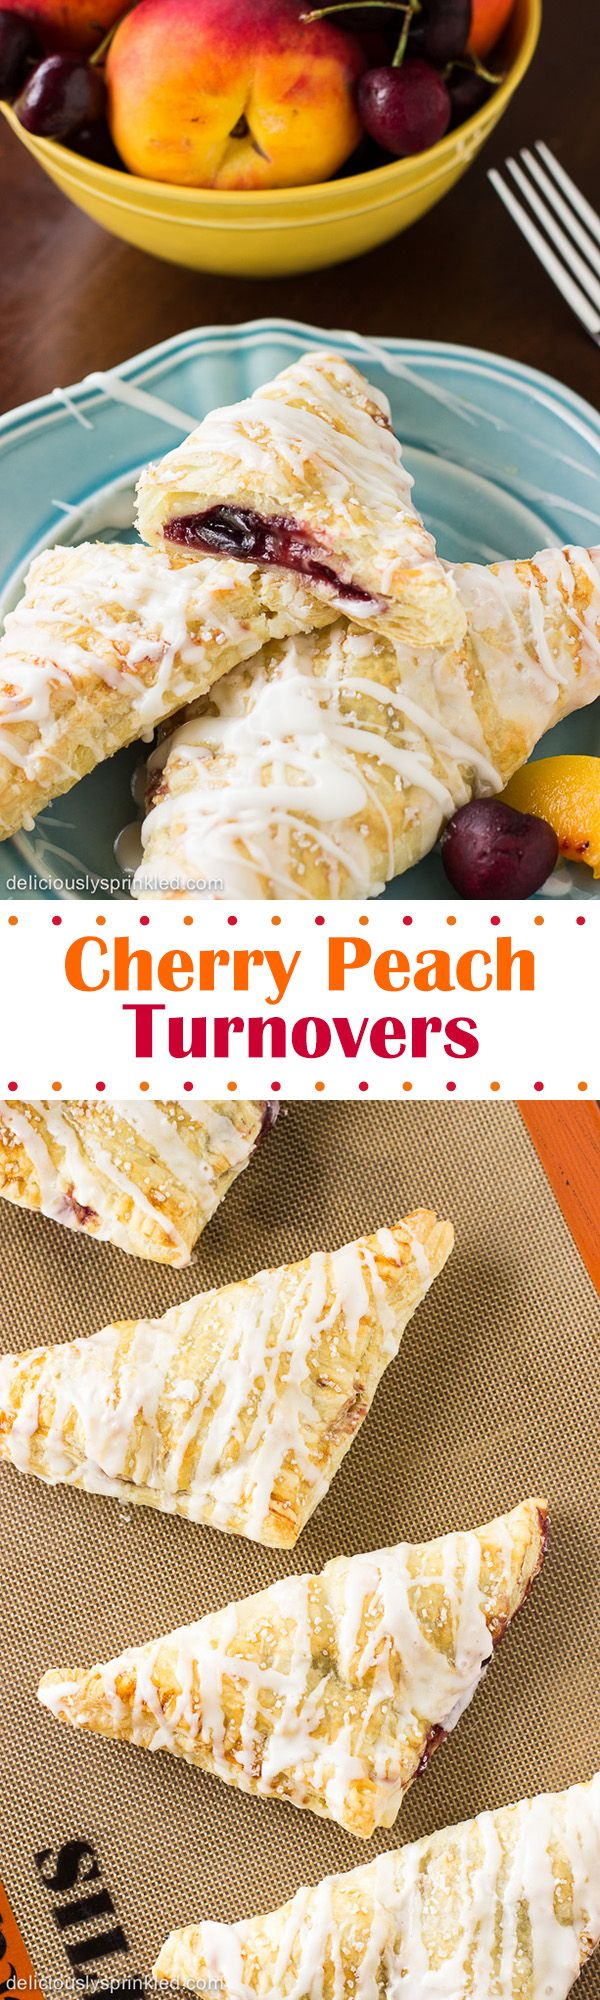 Cherry Peach Turnovers- these turnovers are so easy to make and they're delicious!